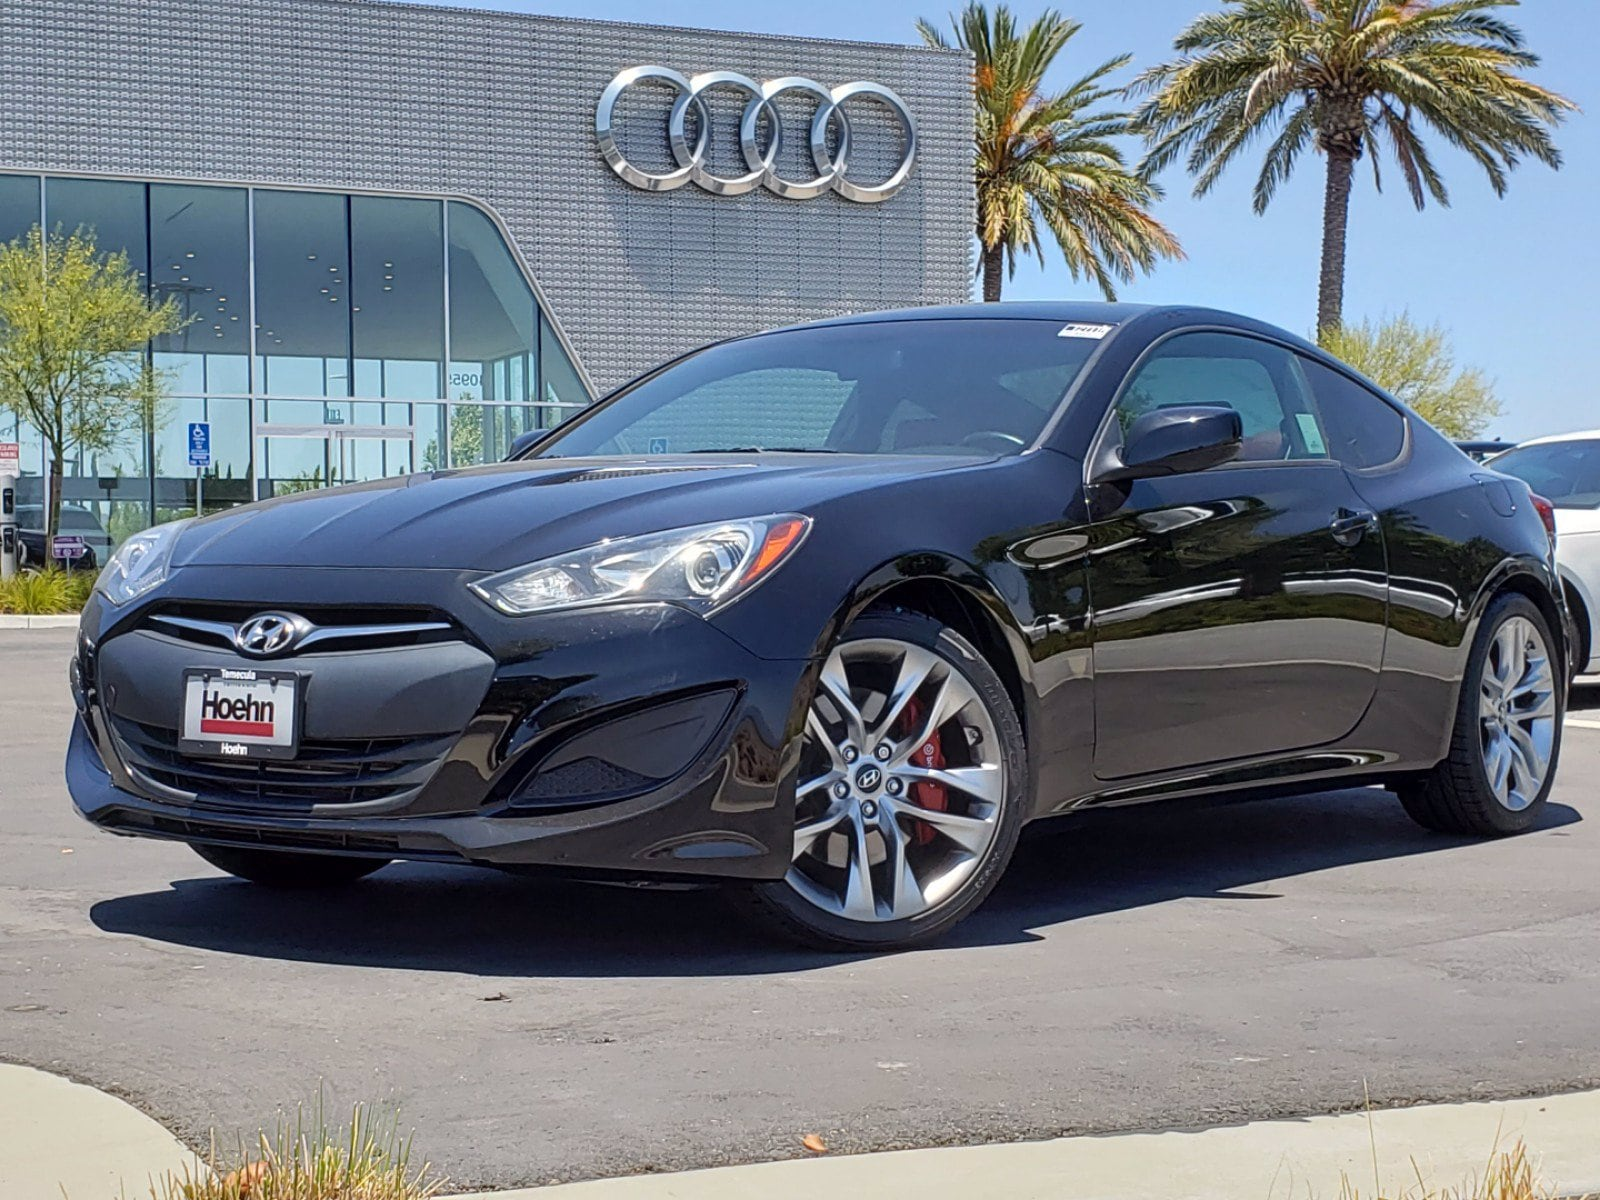 Pre-Owned 2013 Hyundai Genesis Coupe 2.0T R-Spec